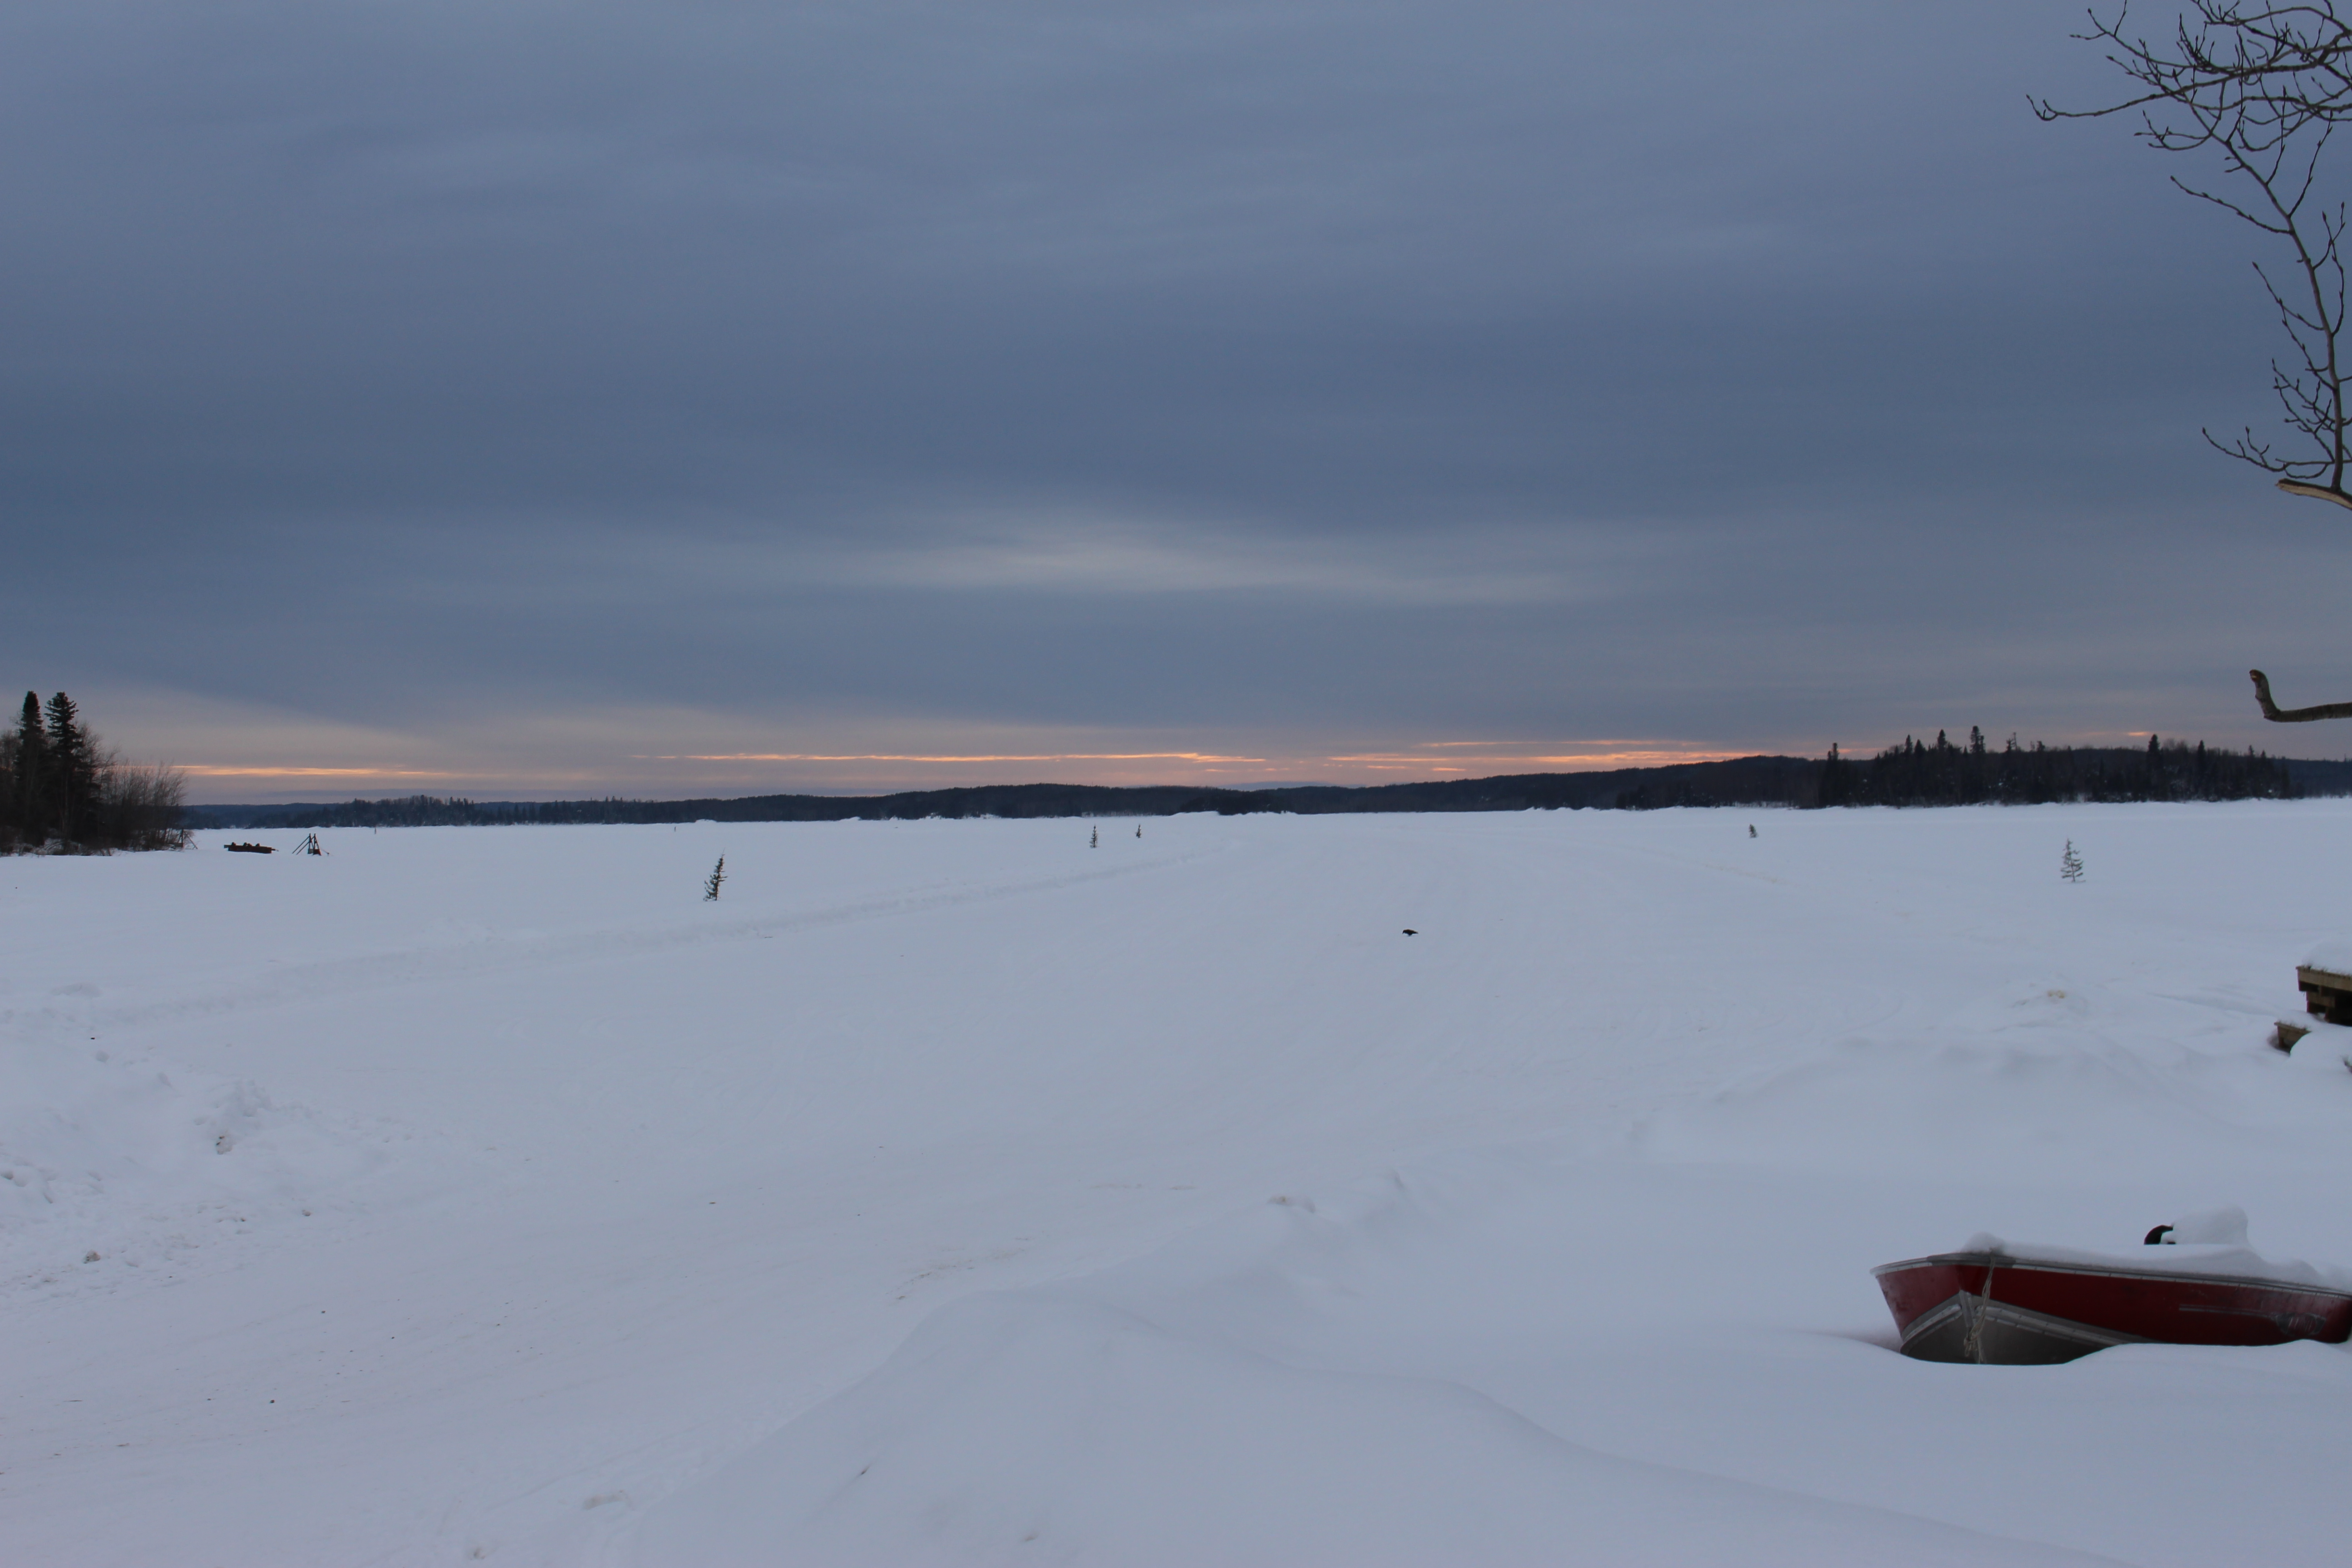 stretch of snow with a sunset